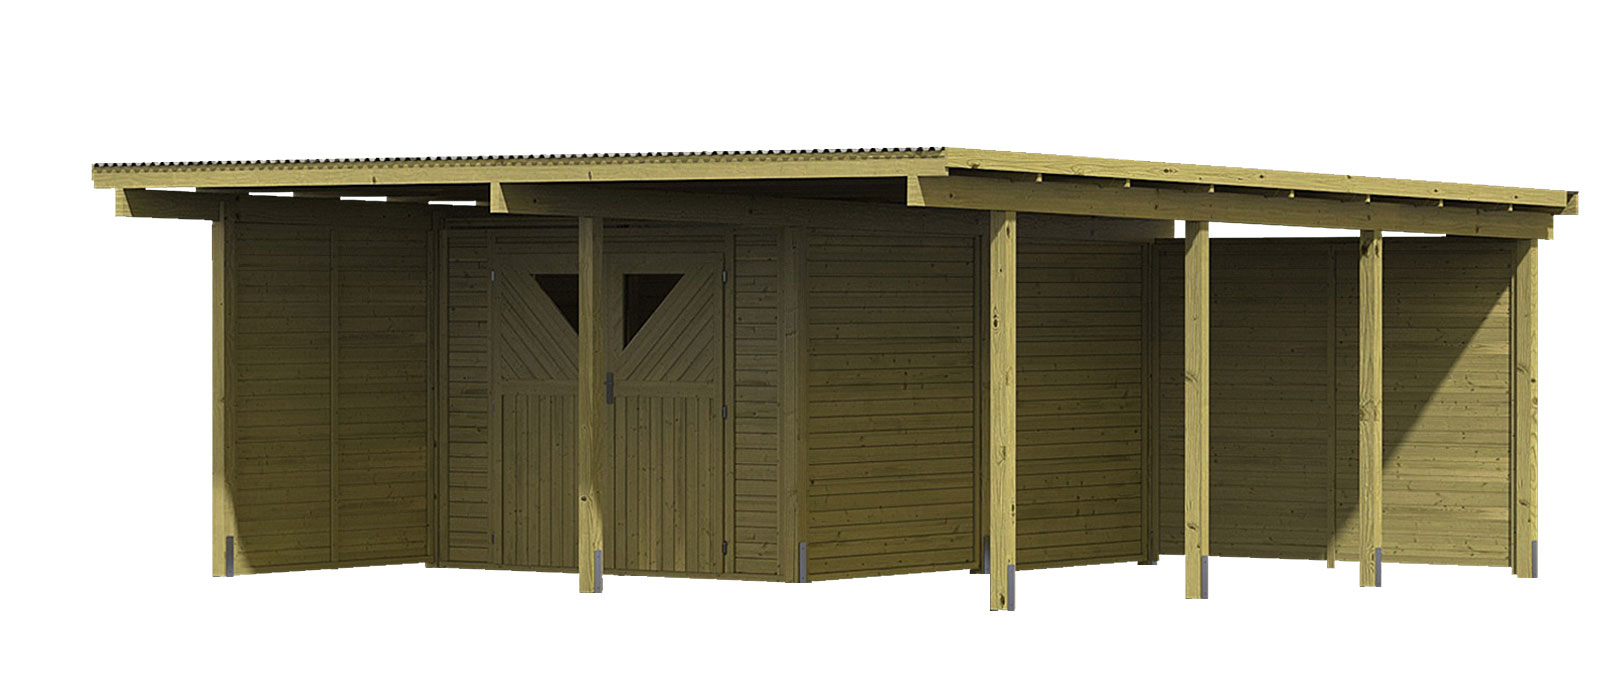 karibu eco carport mit abstellraum 2 kdi 563x676cm wand set bei. Black Bedroom Furniture Sets. Home Design Ideas